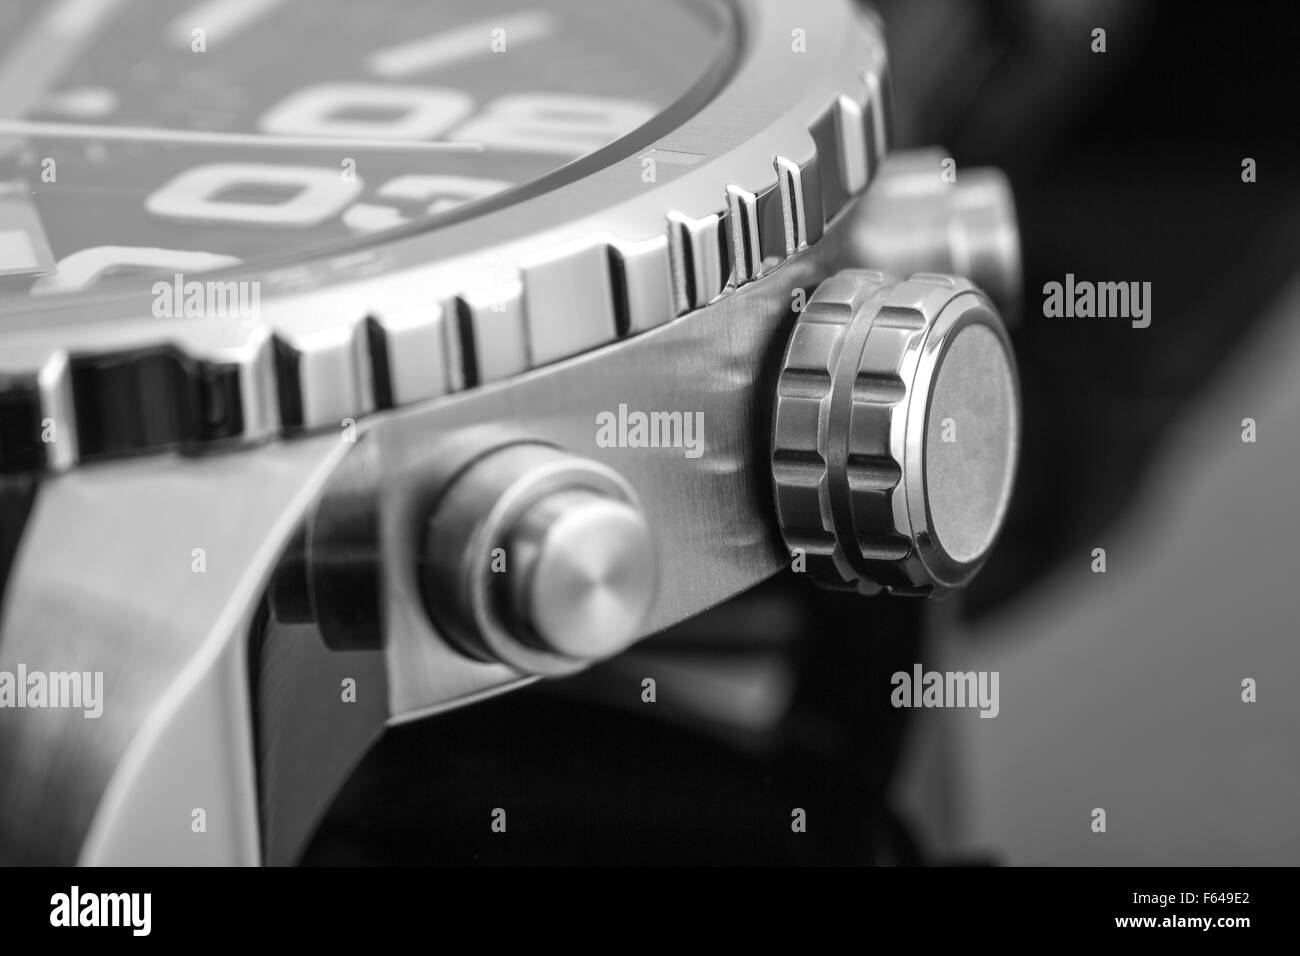 Macro view of expensive watch - Stock Image